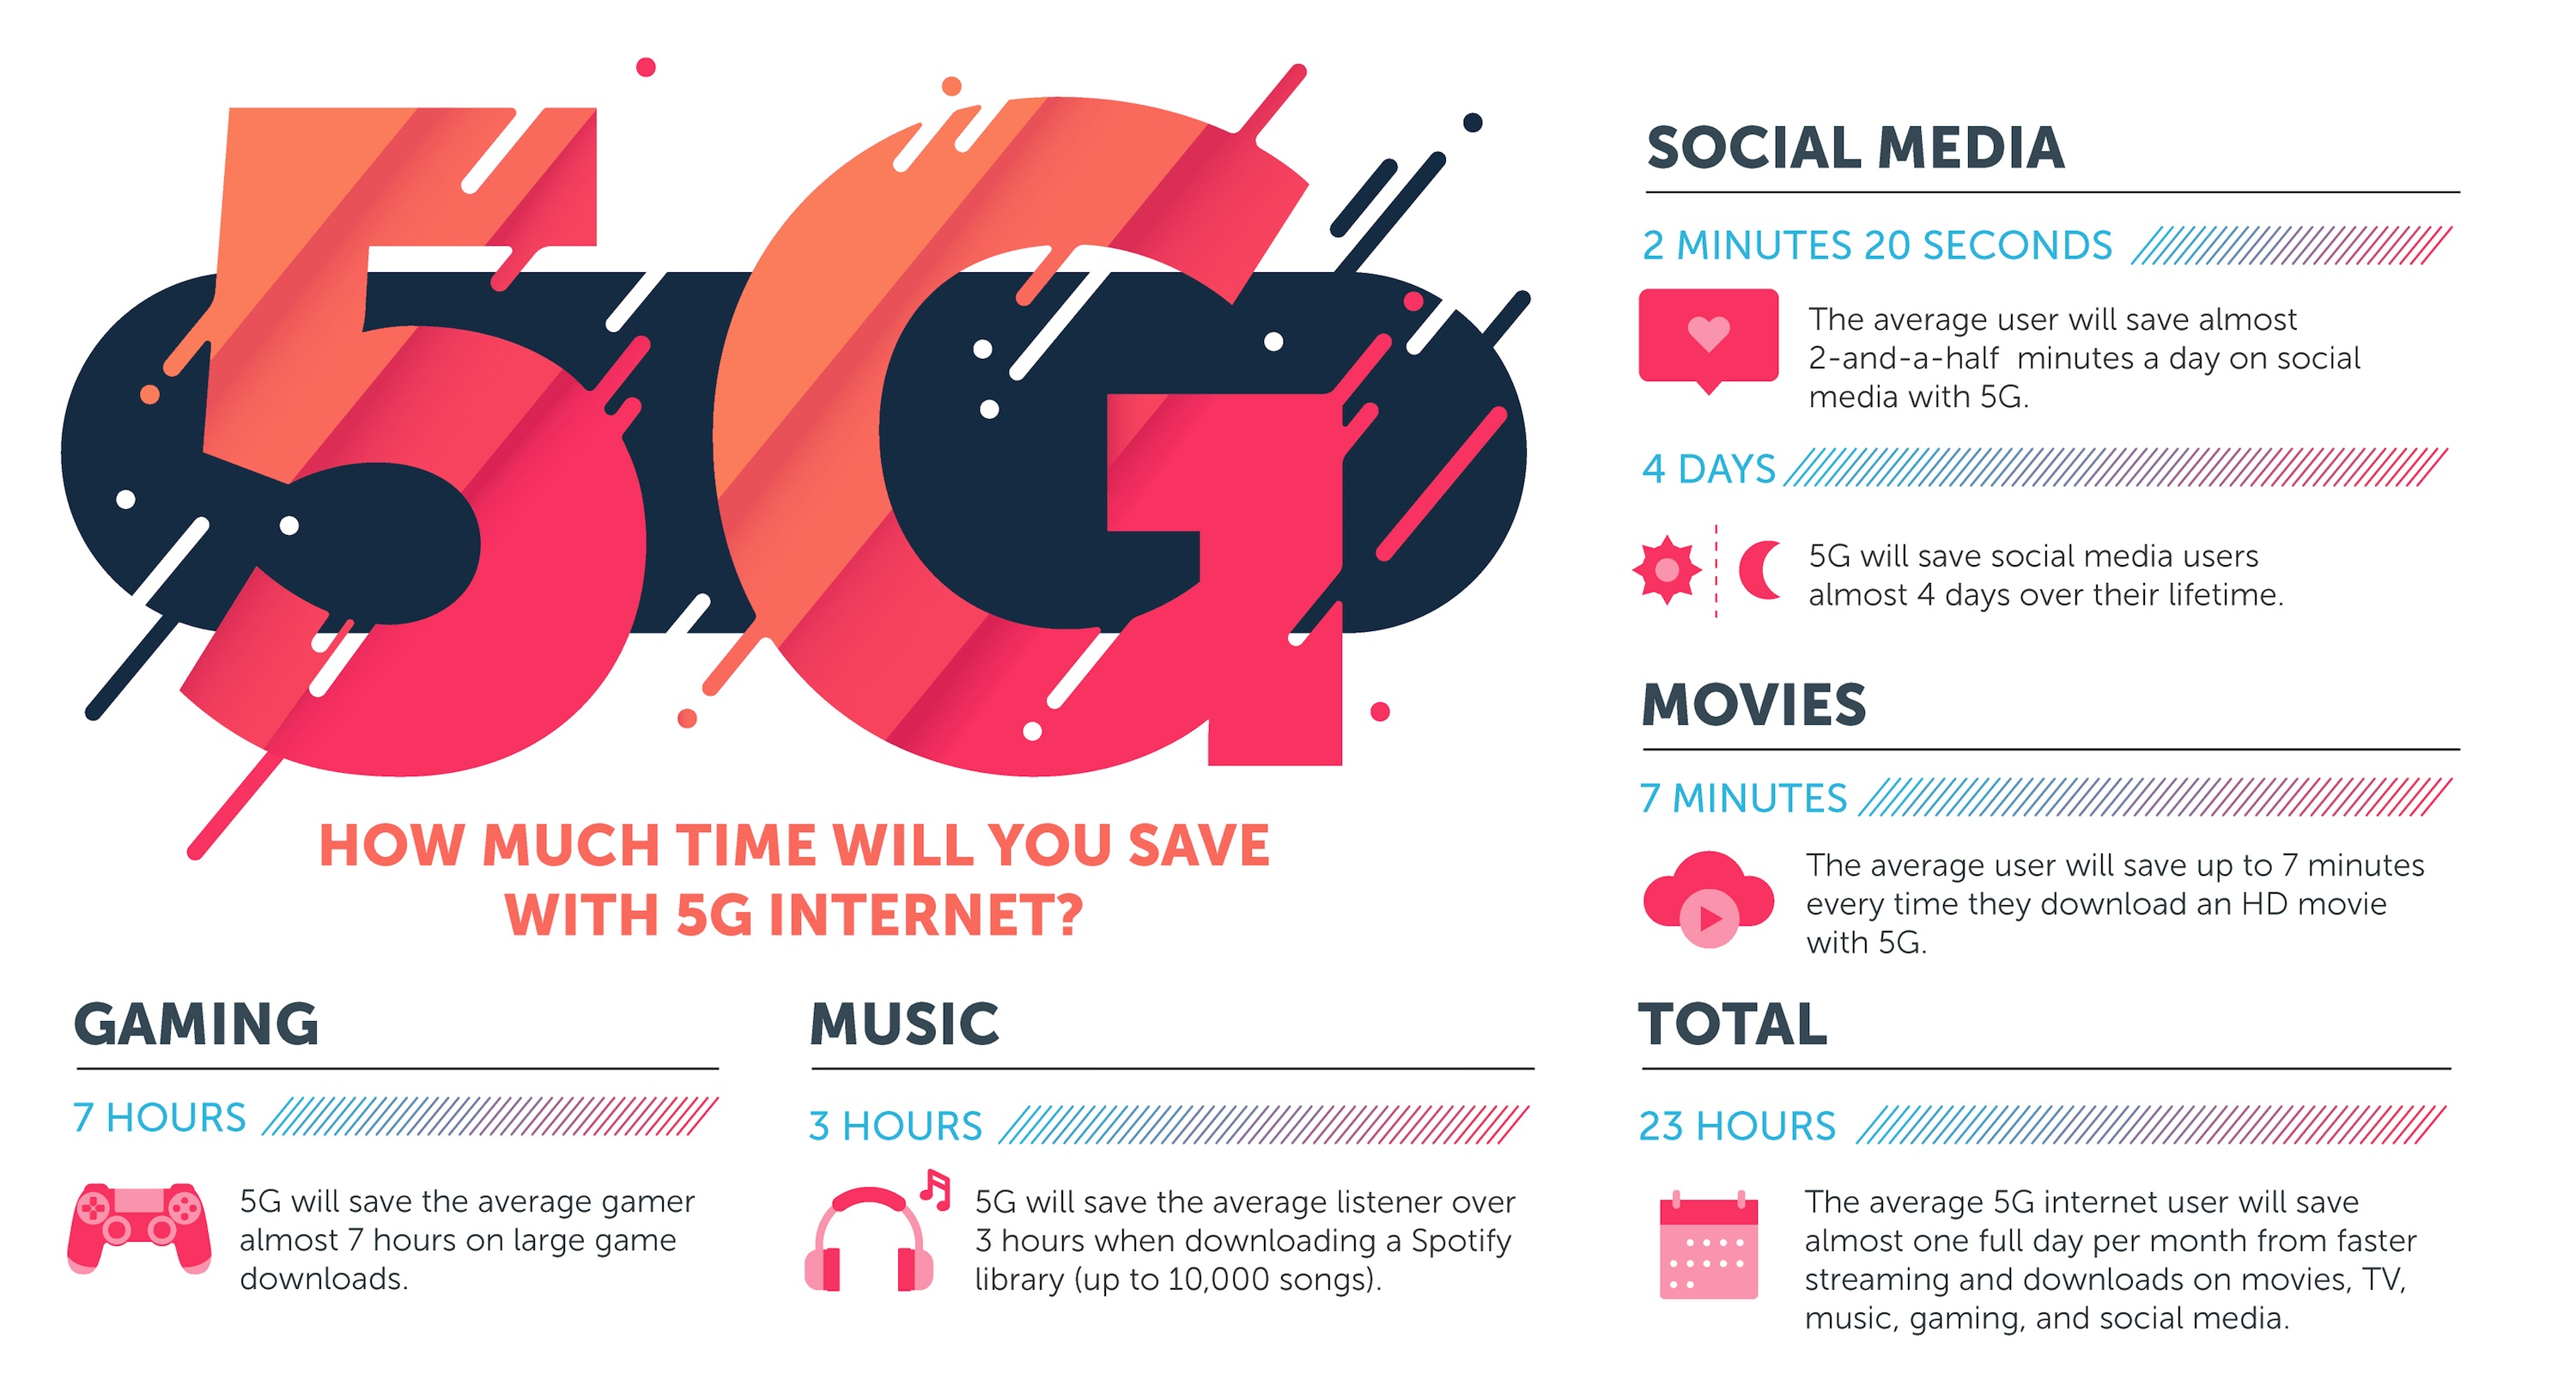 How Much Time Will You Save With 5G Internet?